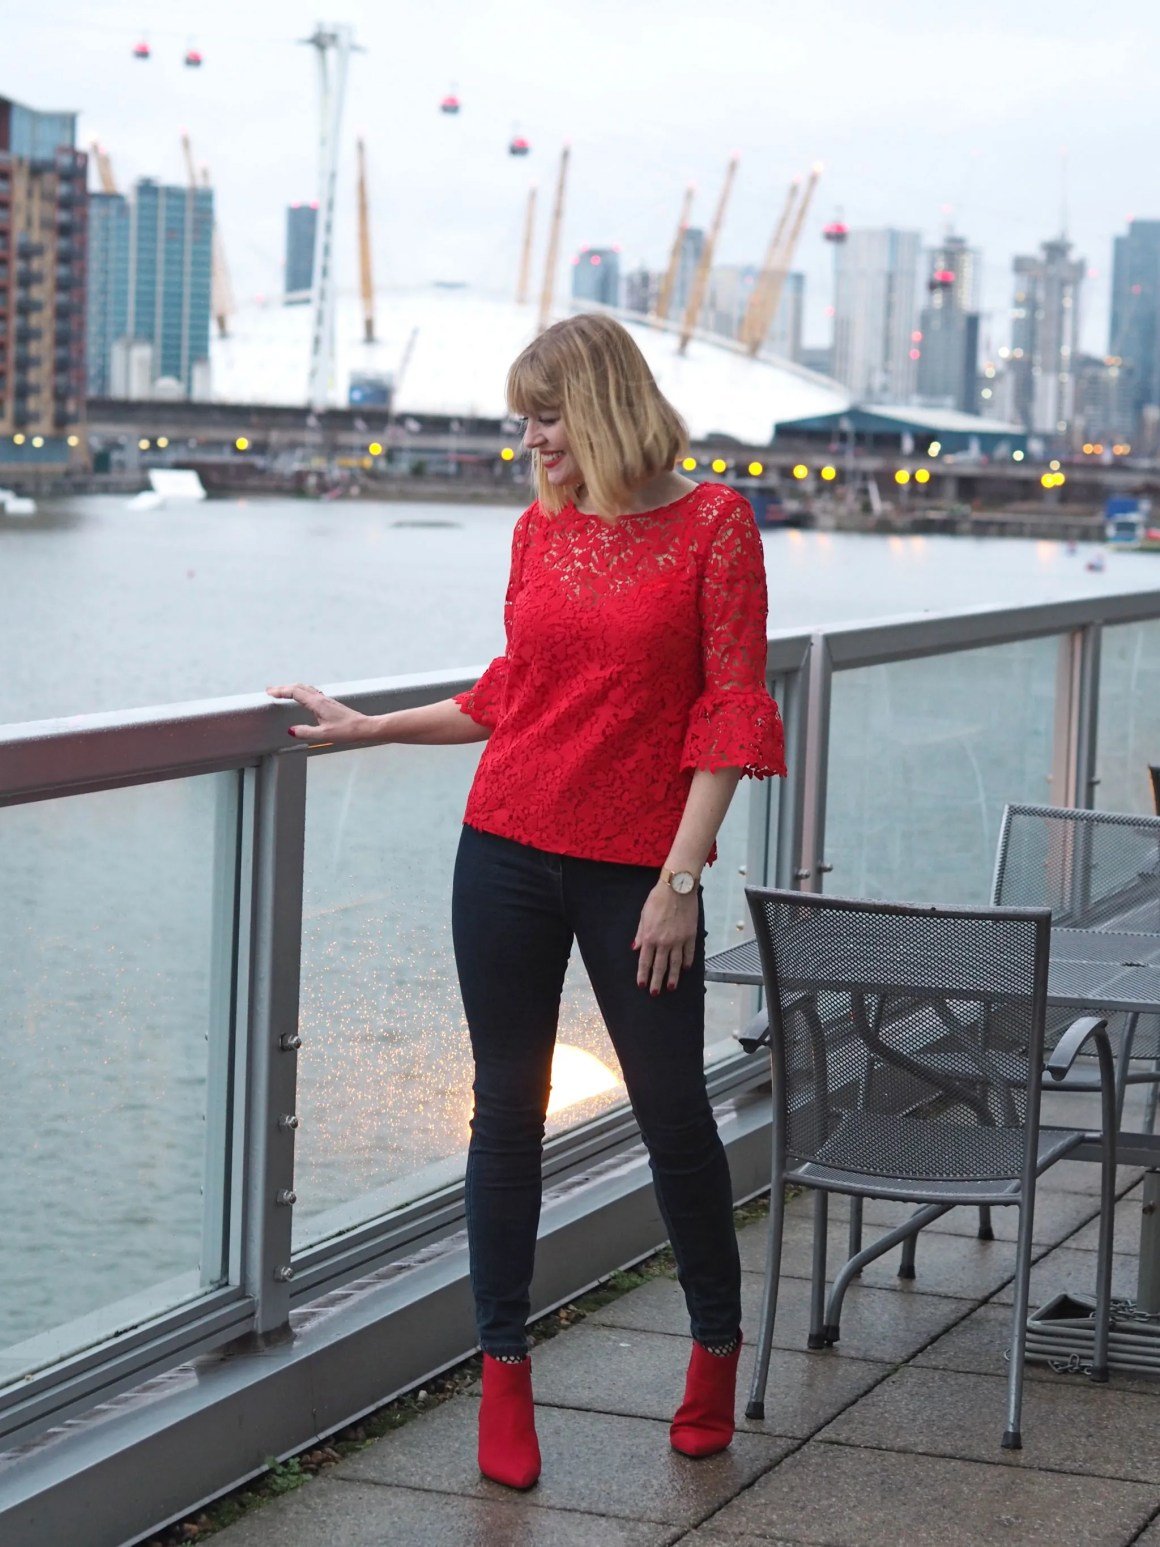 what-lizzy-loves-Bodenred-lace-top-red-boots